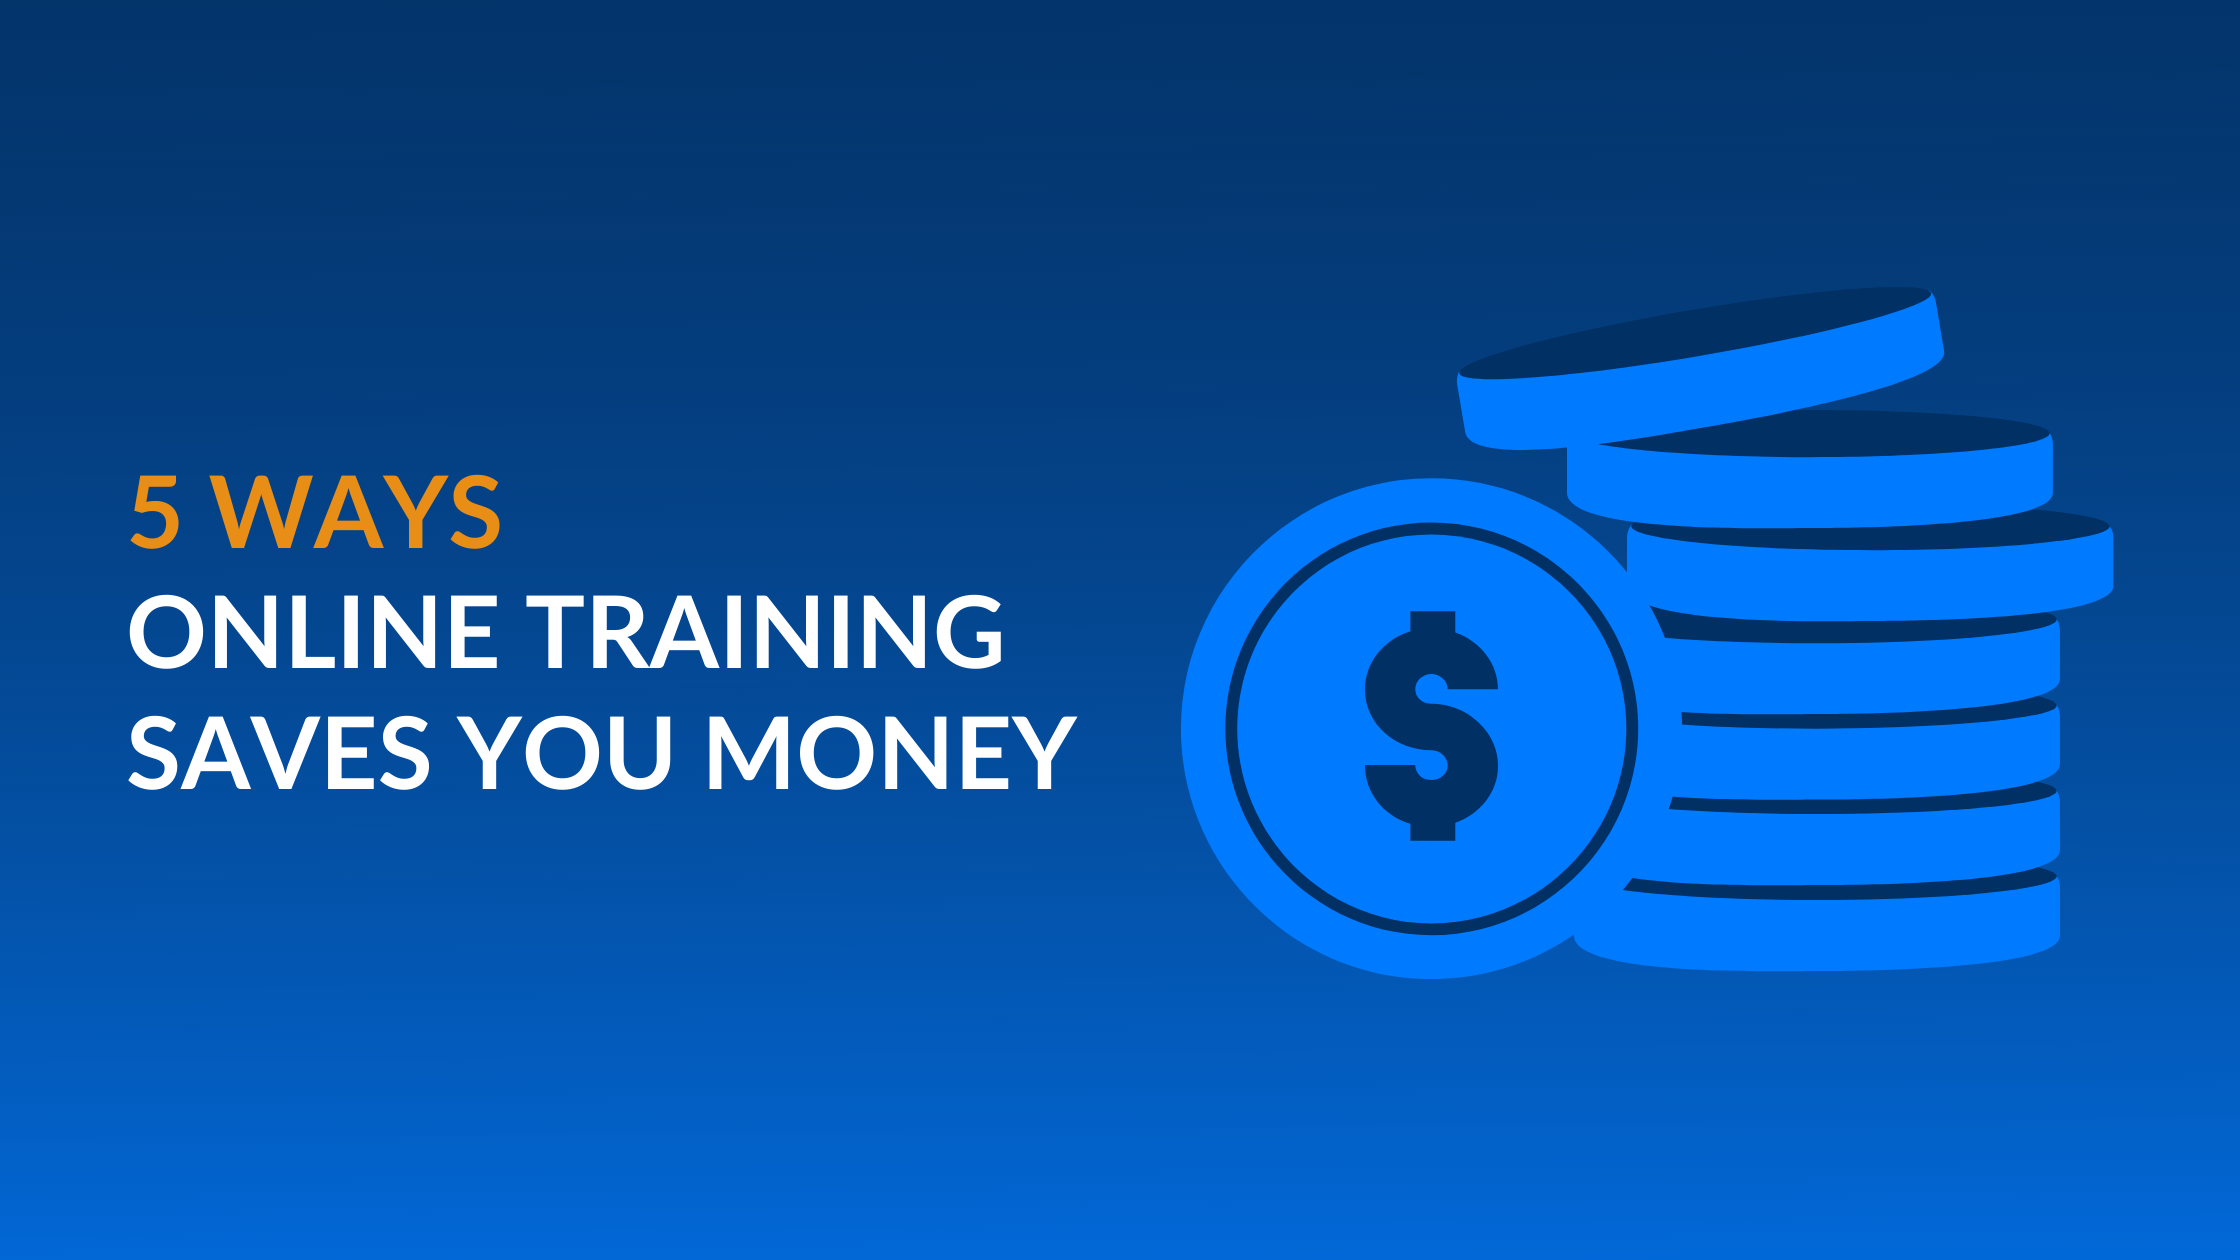 5 Ways Online Training For Employees Saves You Money